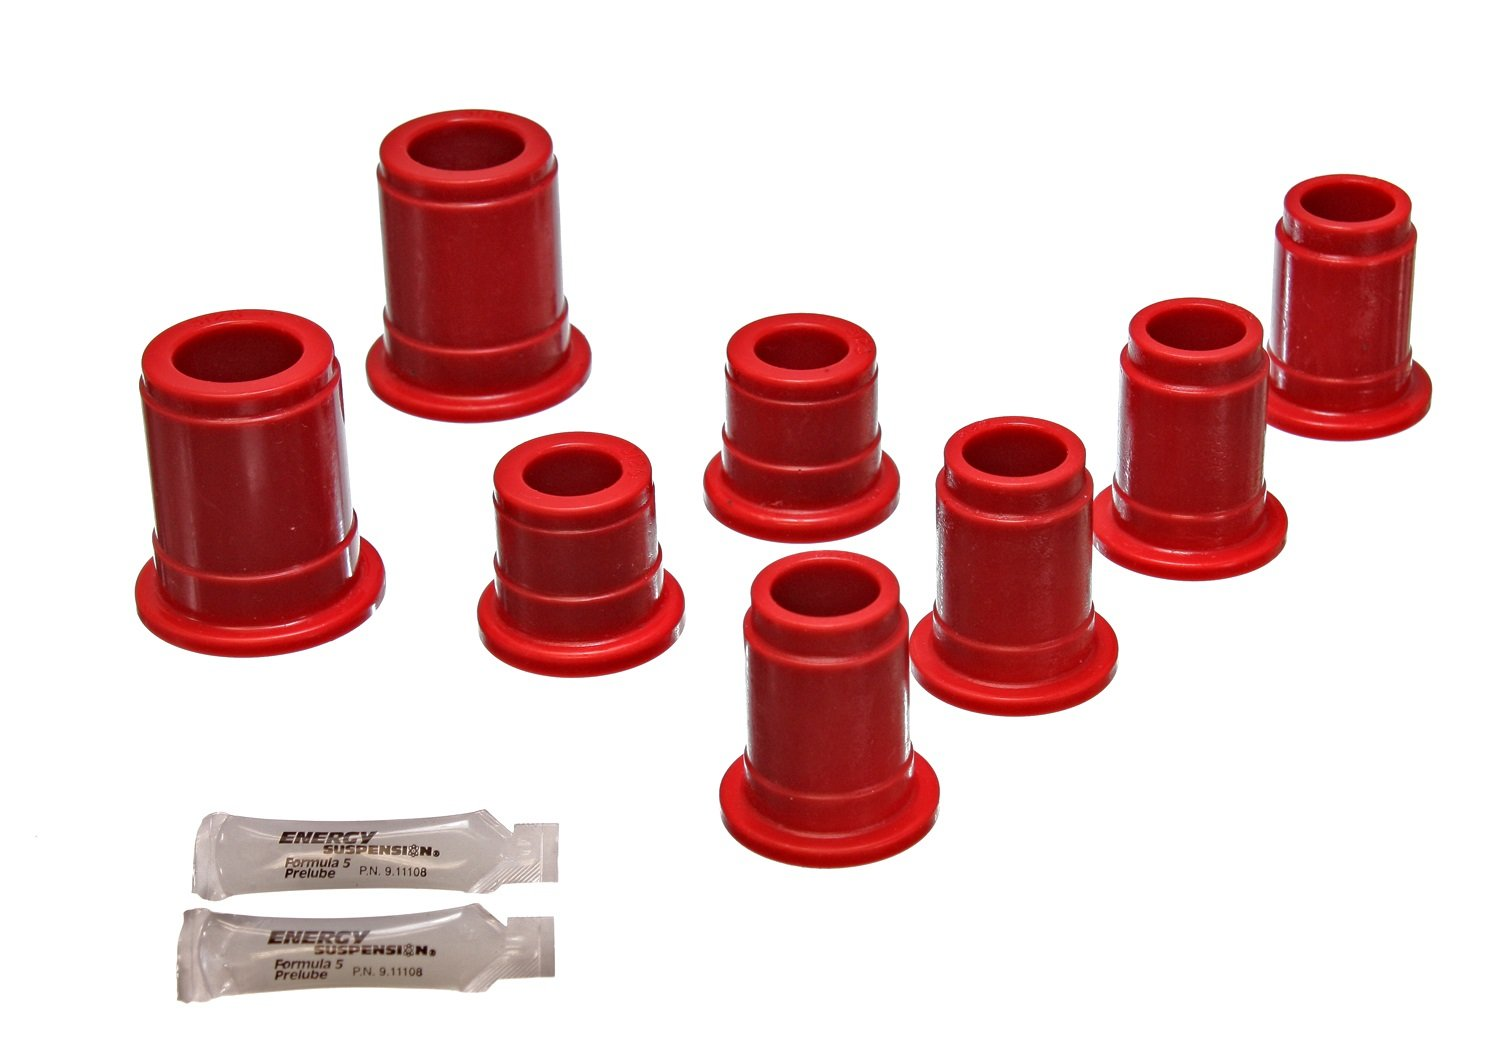 Energy Suspension ENE-8.3108R Lenkerkabelbuchsen-Set von Energy Suspension